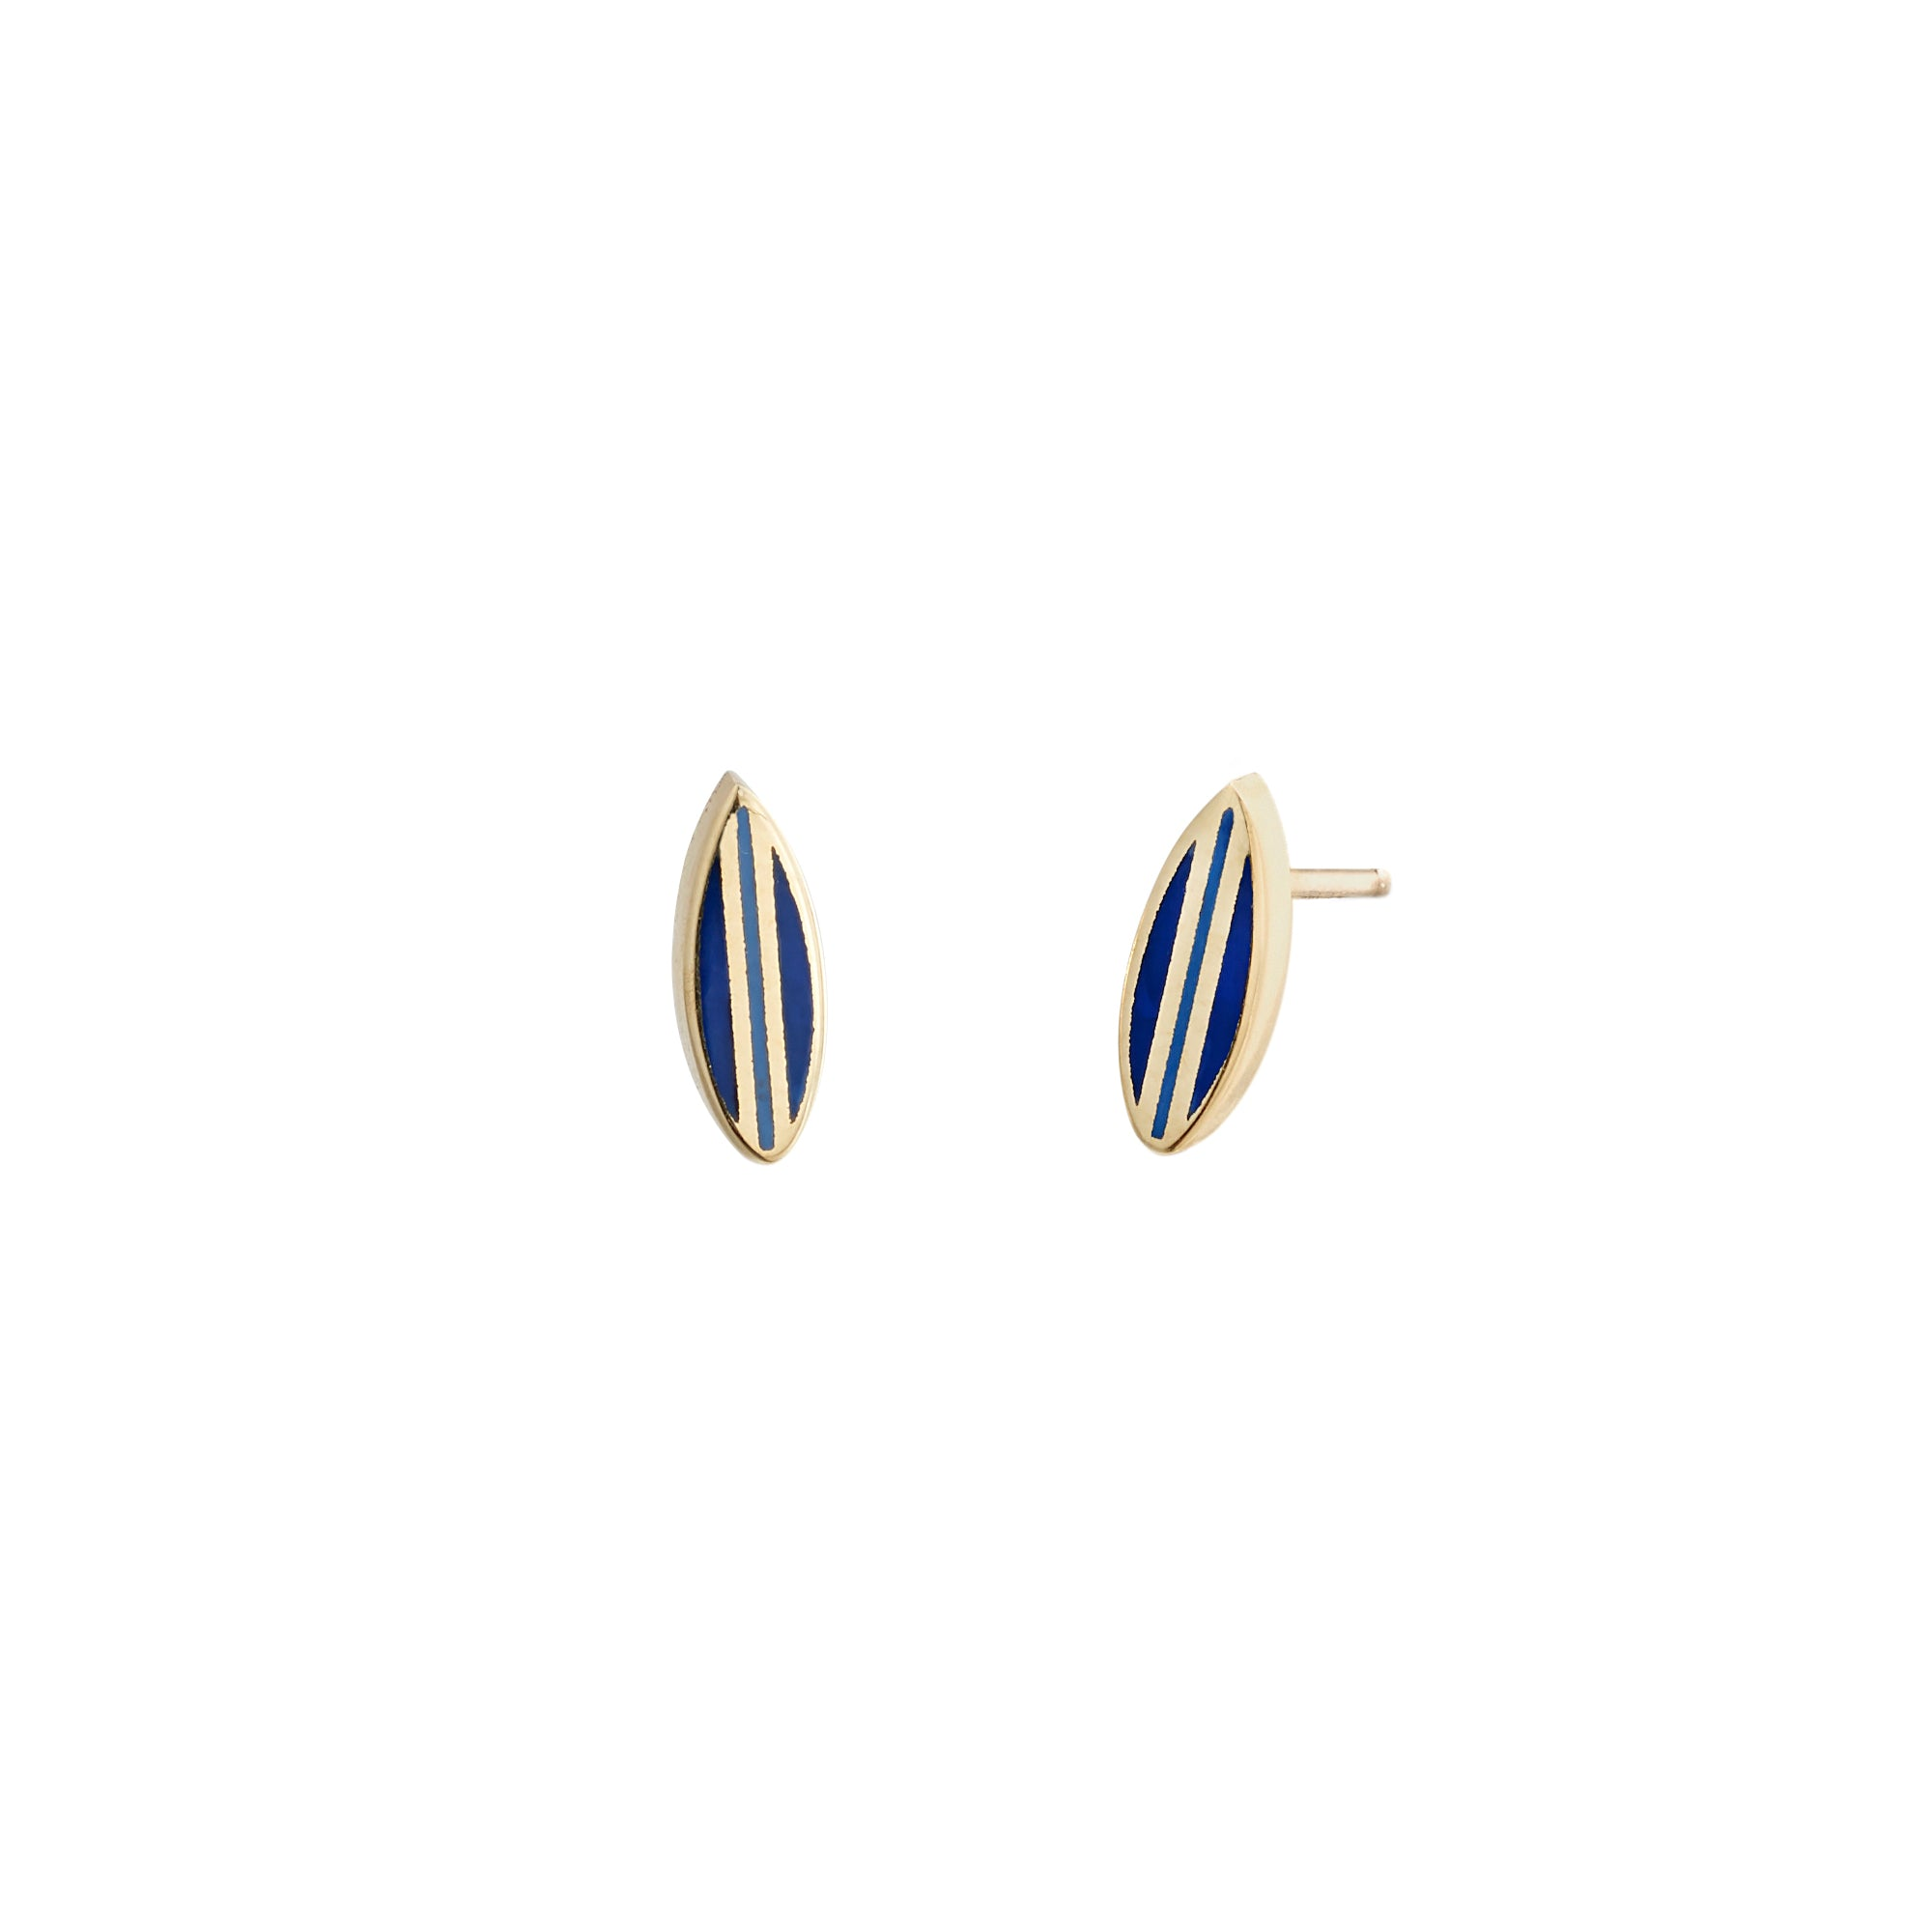 Small Dark Blue Surf Studs - Tara Hirshberg - Earrings | Broken English Jewelry